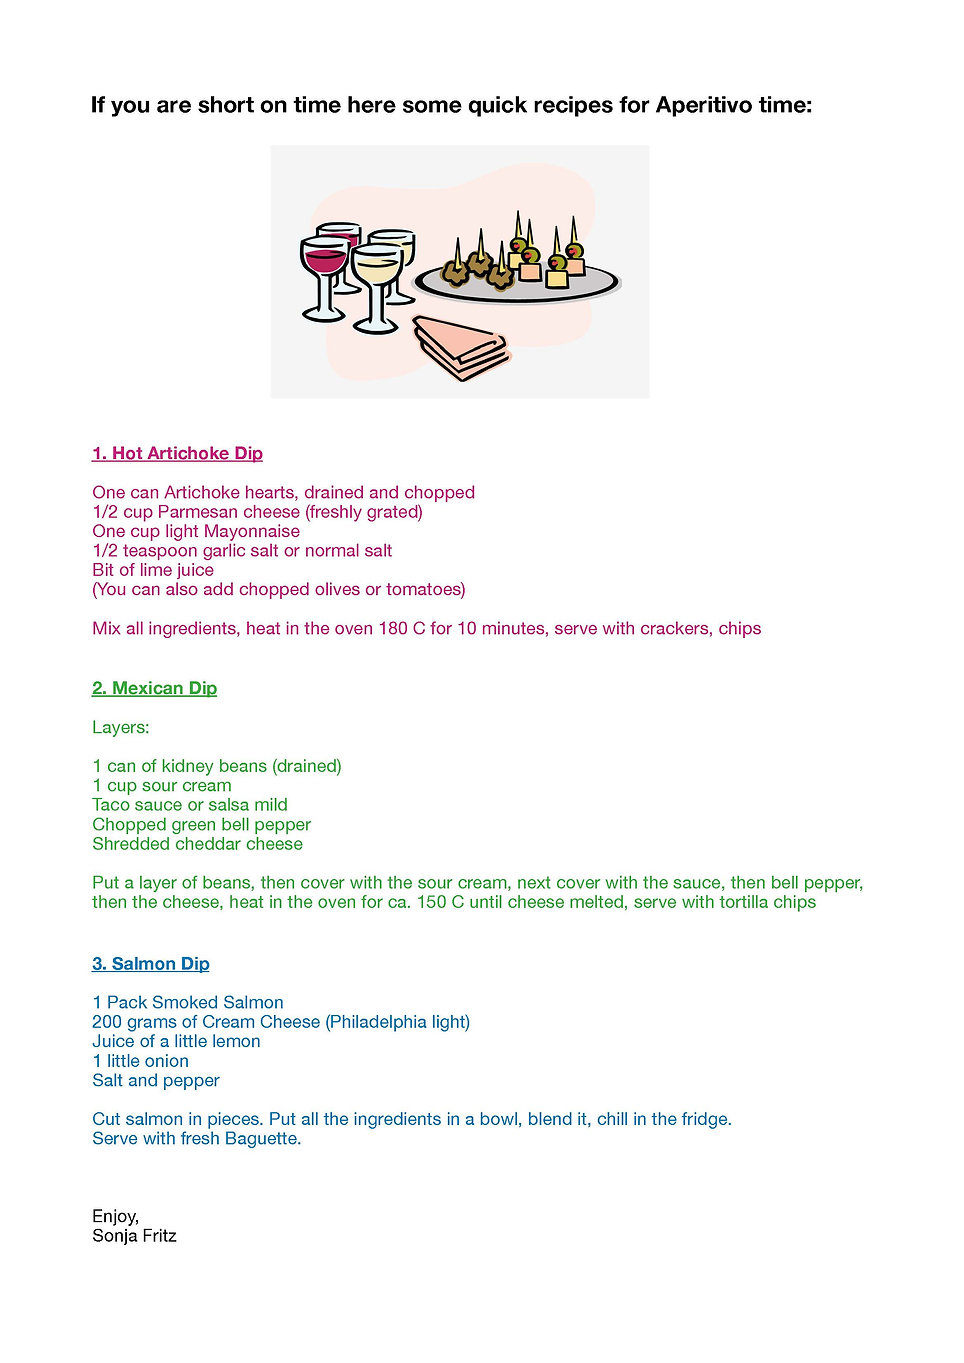 Quick recipes for Aperitivo by Sonja.jpg